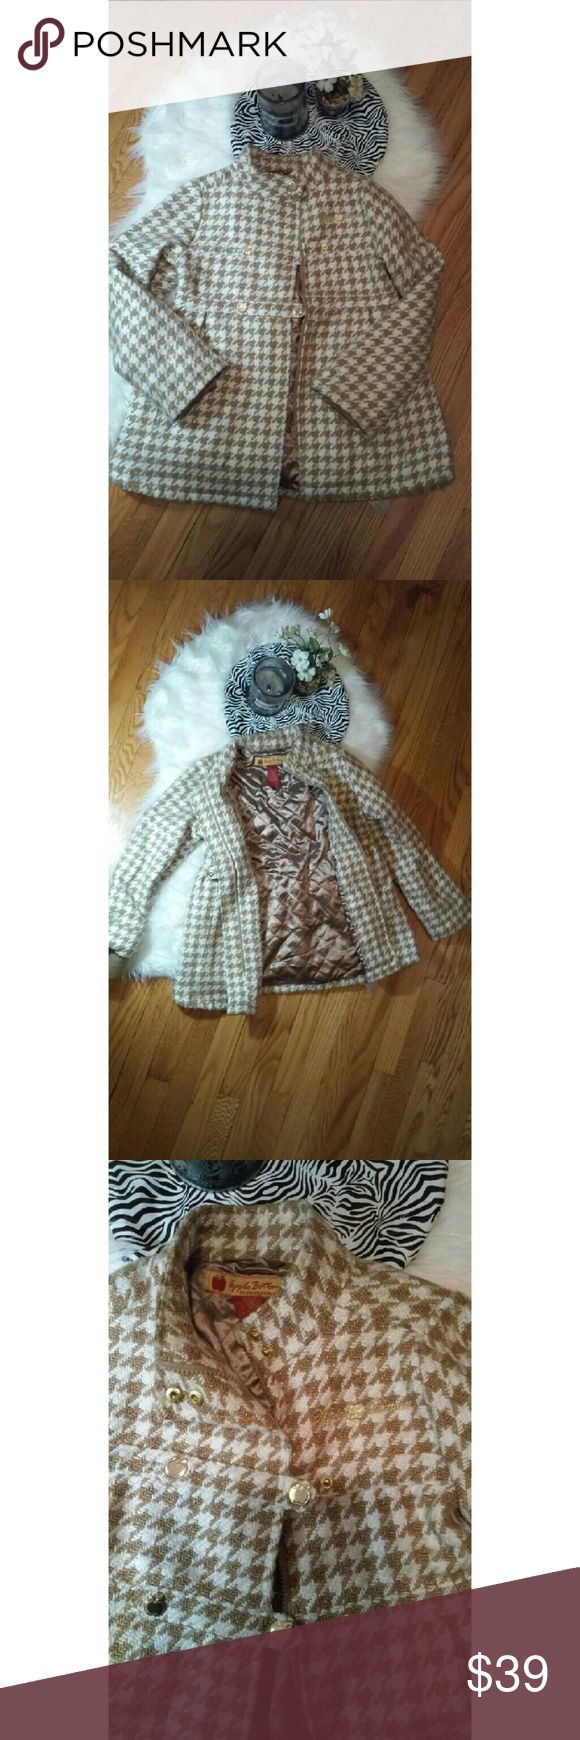 Beautiful little girls peacoat Apple Bottoms -Zippered closure with overlay snap button closure  -dress design -dreamed at back  -gold buttons shaped like apples -quilted lining Apple Bottoms Jackets & Coats Pea Coats